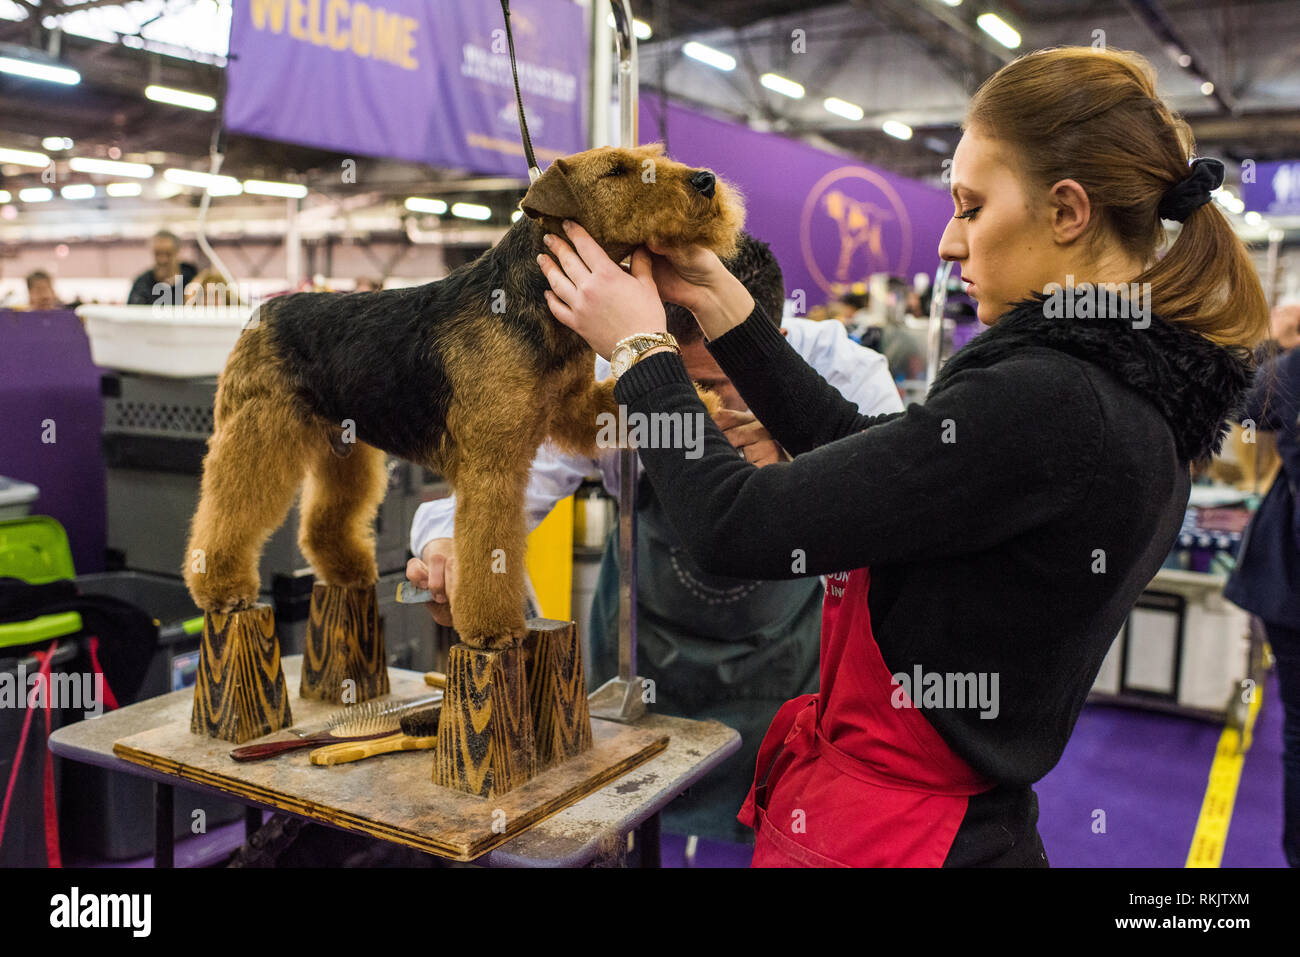 New York City, USA -February 11, 2019: Westminster Dog Show, New York City. Credit: Valery Rizzo/Alamy Live News Stock Photo